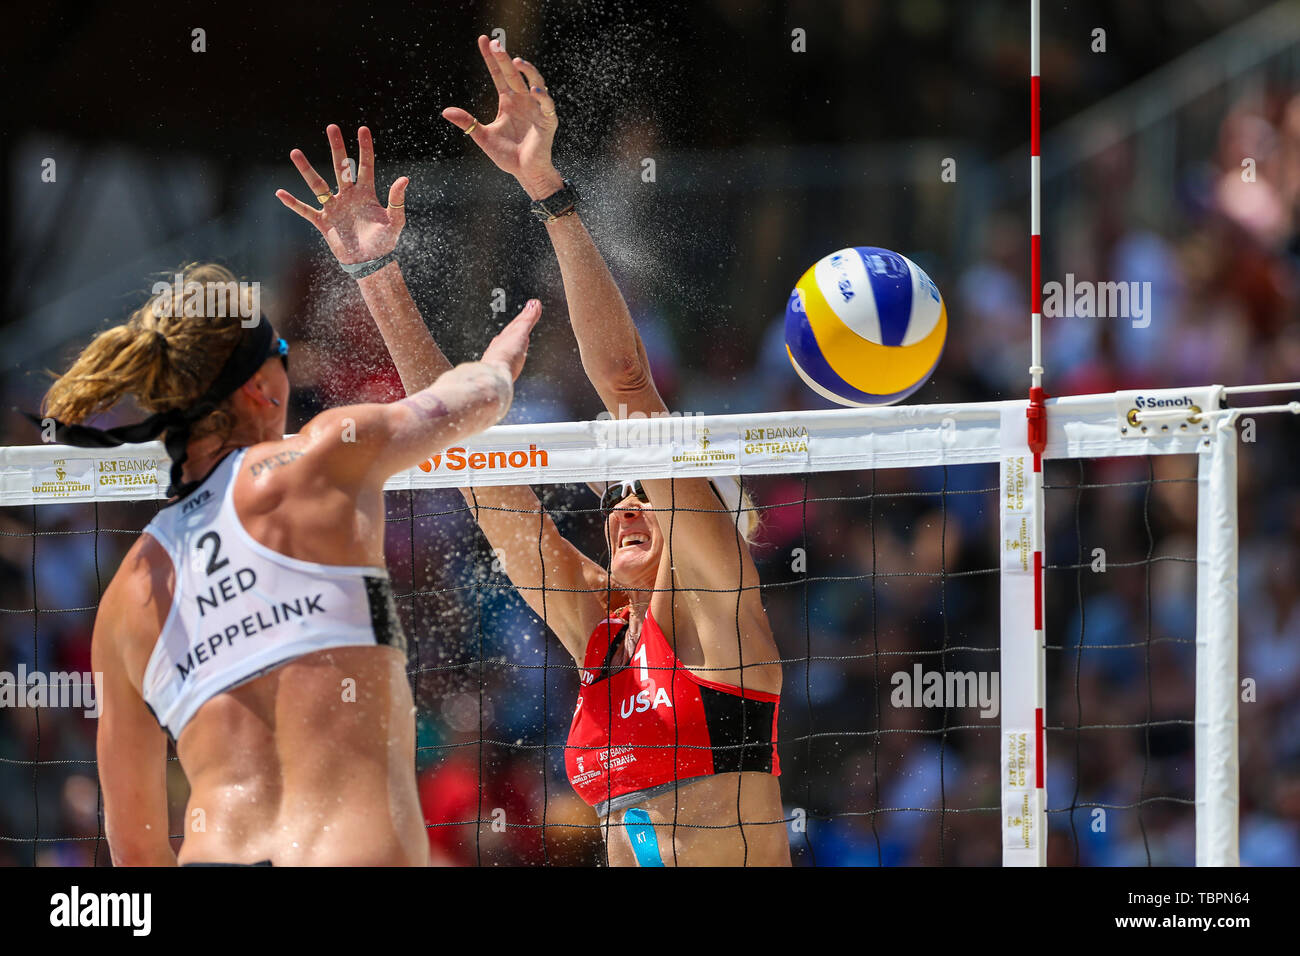 Ostrava, Czech Republic. 02nd June, 2019. L-R MADELEIN MEPPELINK (Netherlands) and KERRI WALSH JENNINGS (USA) in action during the four-star J&T Banka Ostrava Beach Open 2019, part of the FIVB Beach Volleyball World Tour, in Ostrava, Czech Republic, on July 2, 2019. Credit: Vladimir Prycek/CTK Photo/Alamy Live News Stock Photo